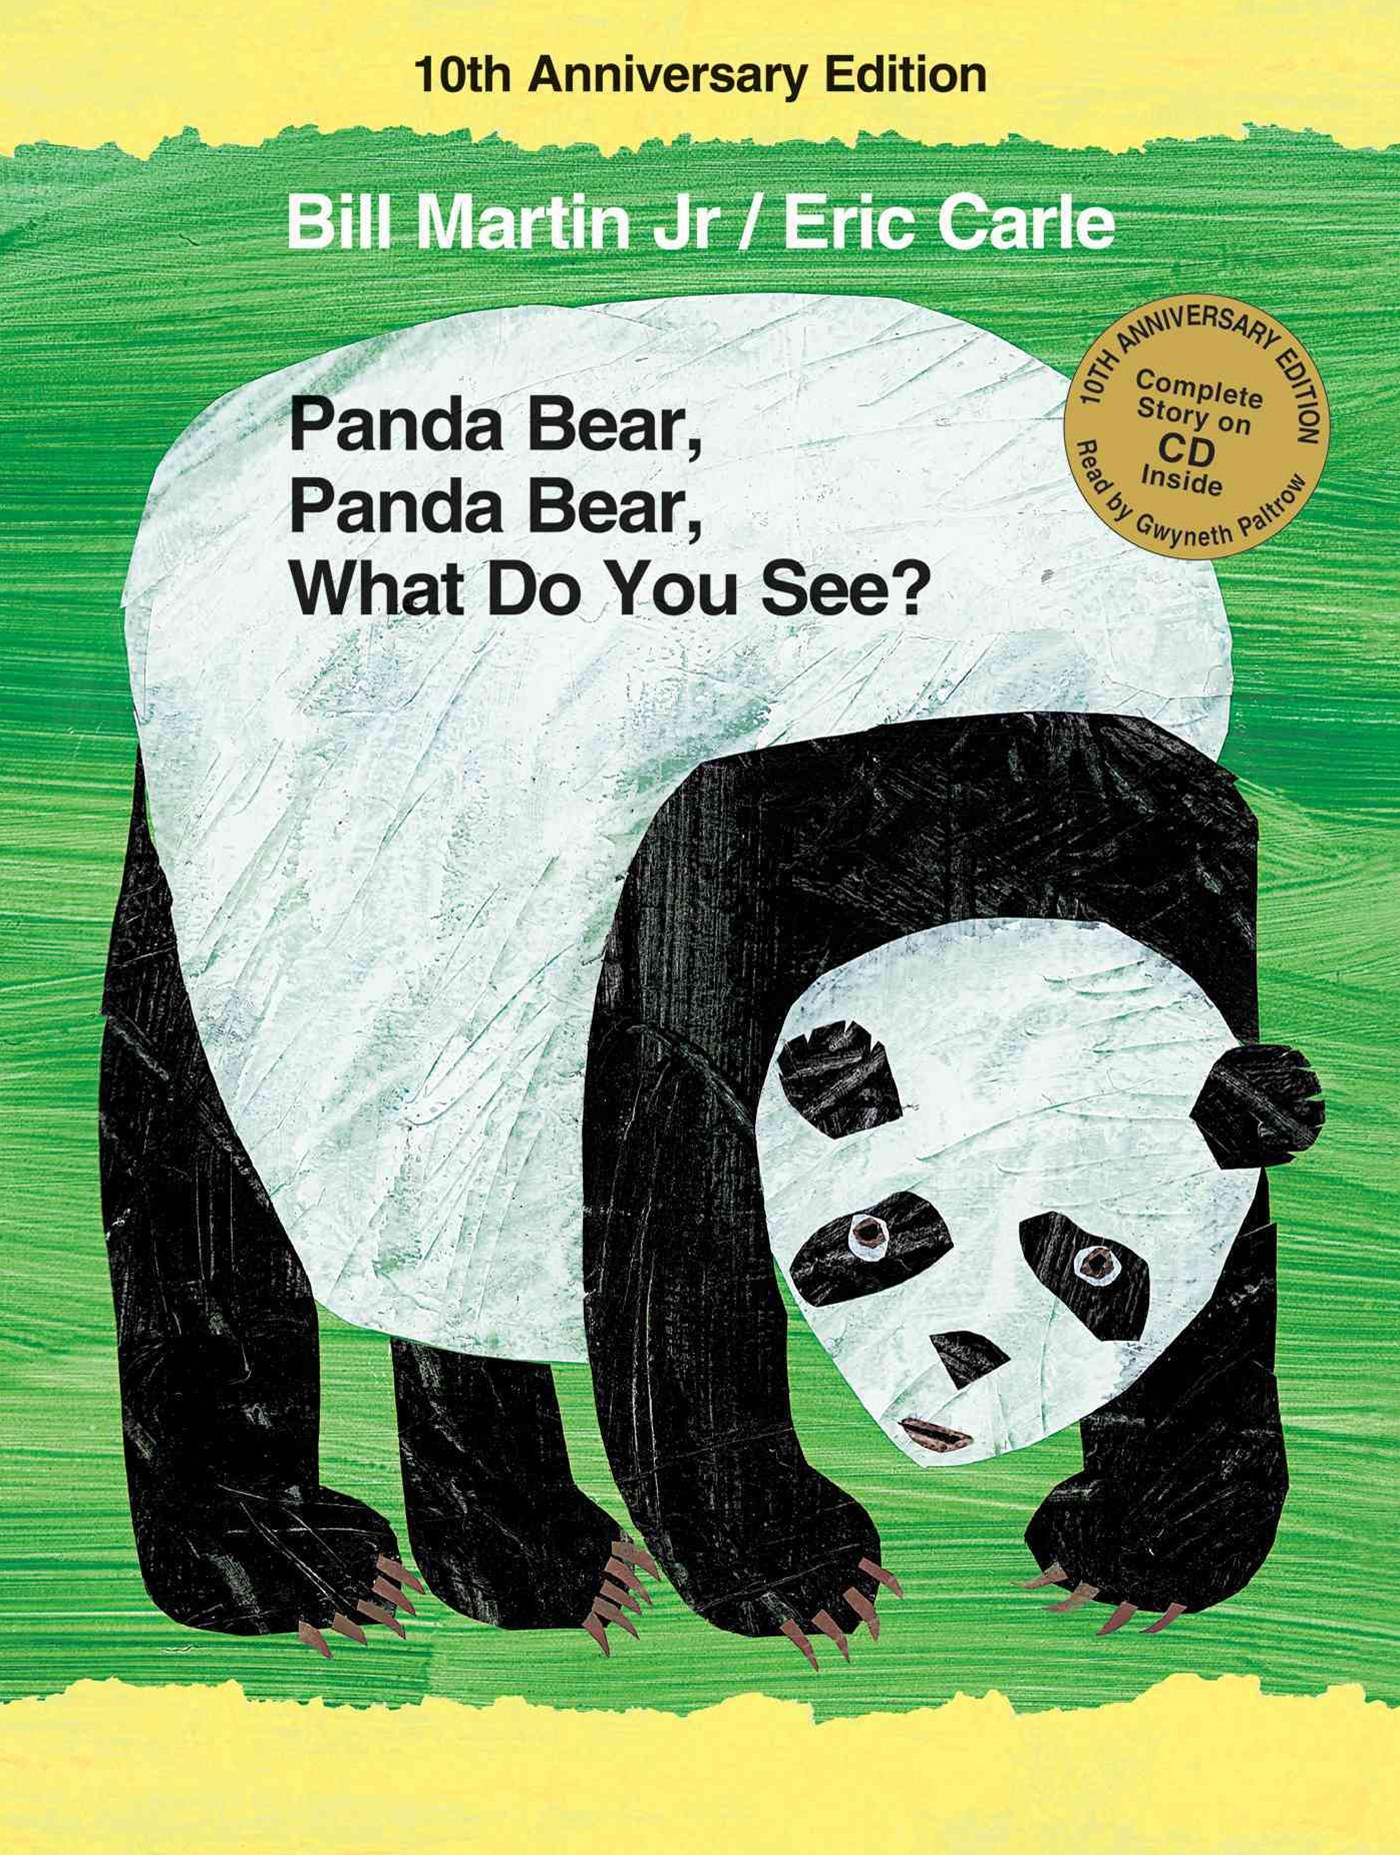 Panda Bear, Panda Bear, What Do You See? 10th Anniversary Edition